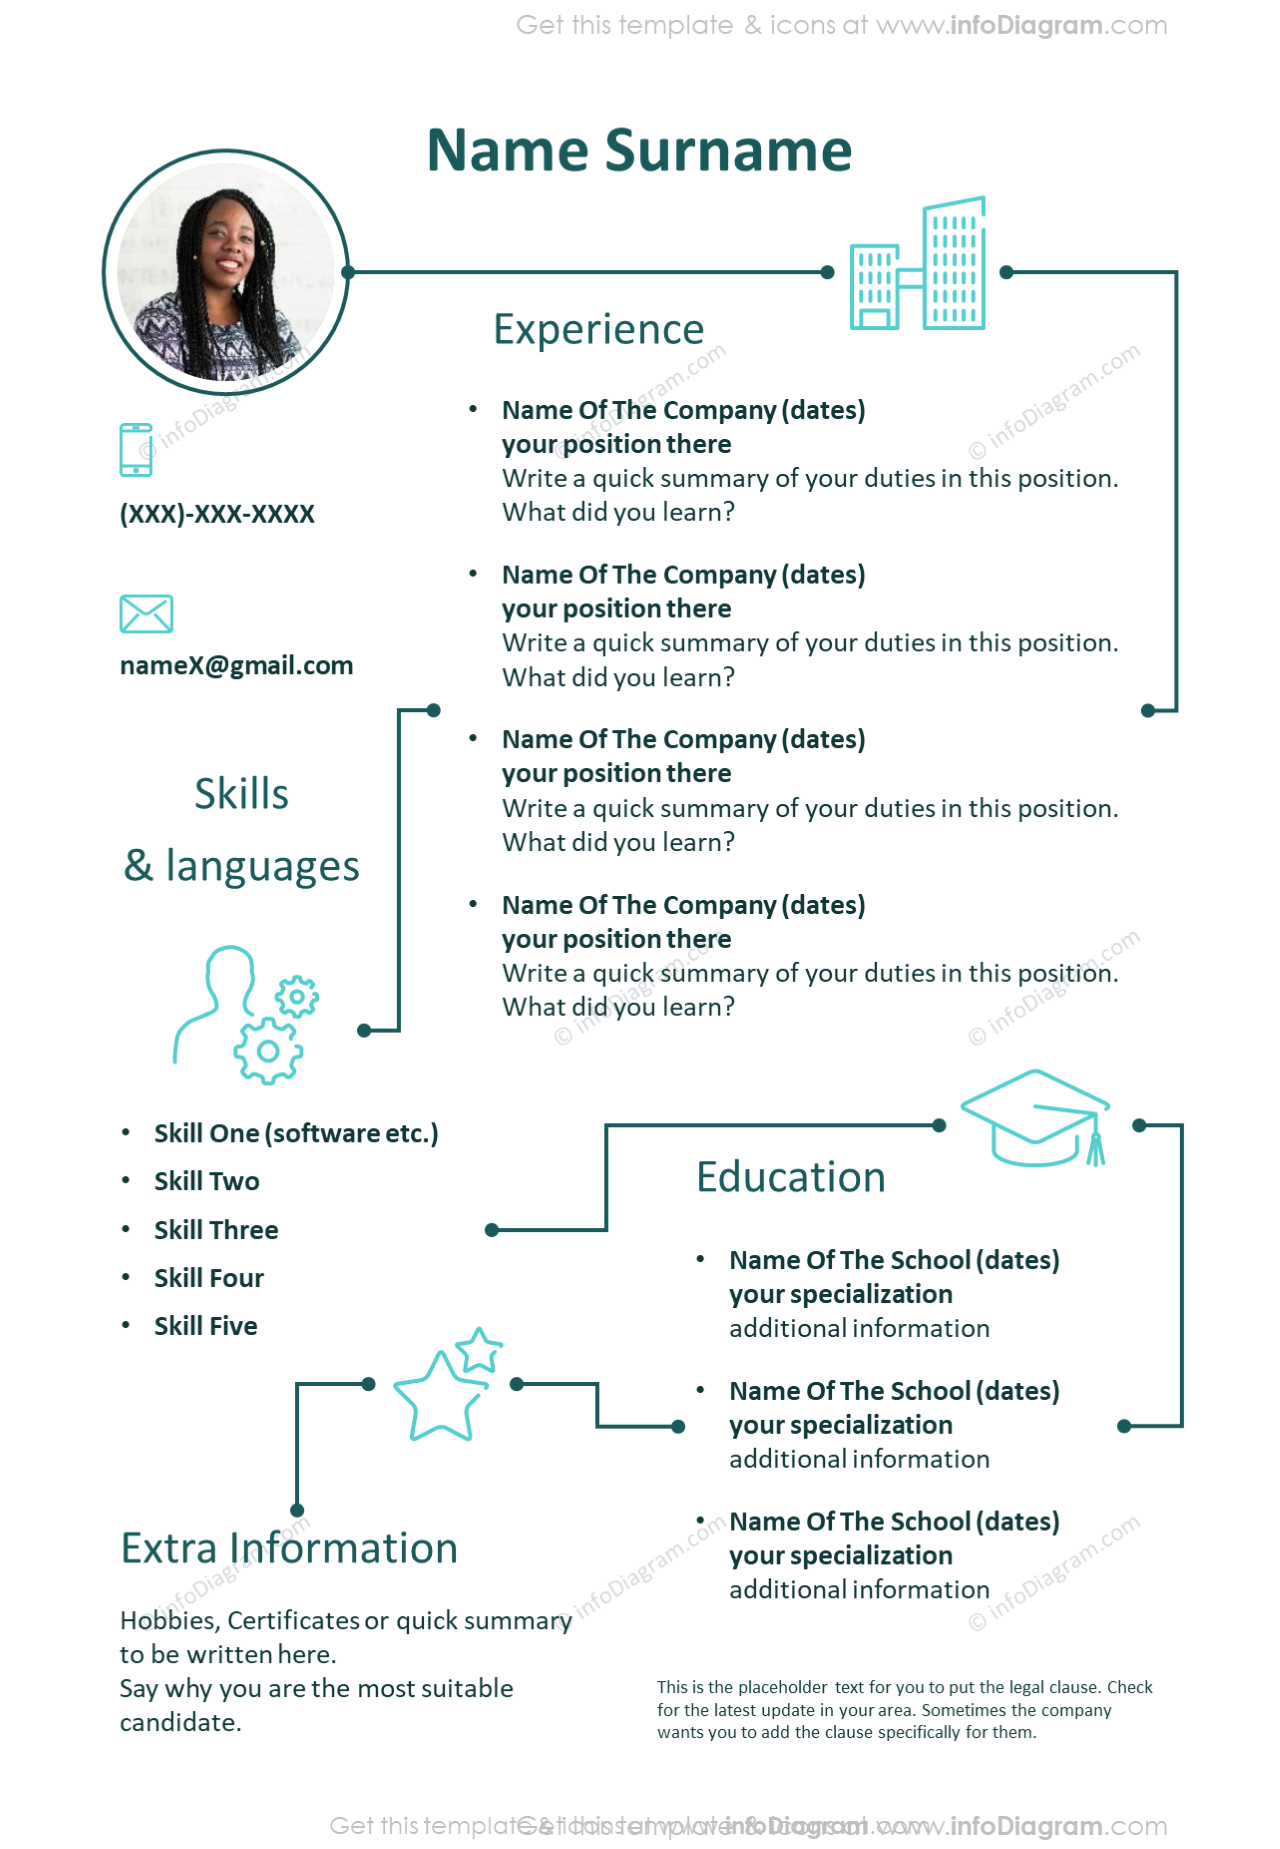 Creative outline personal CV showed with elegant single template